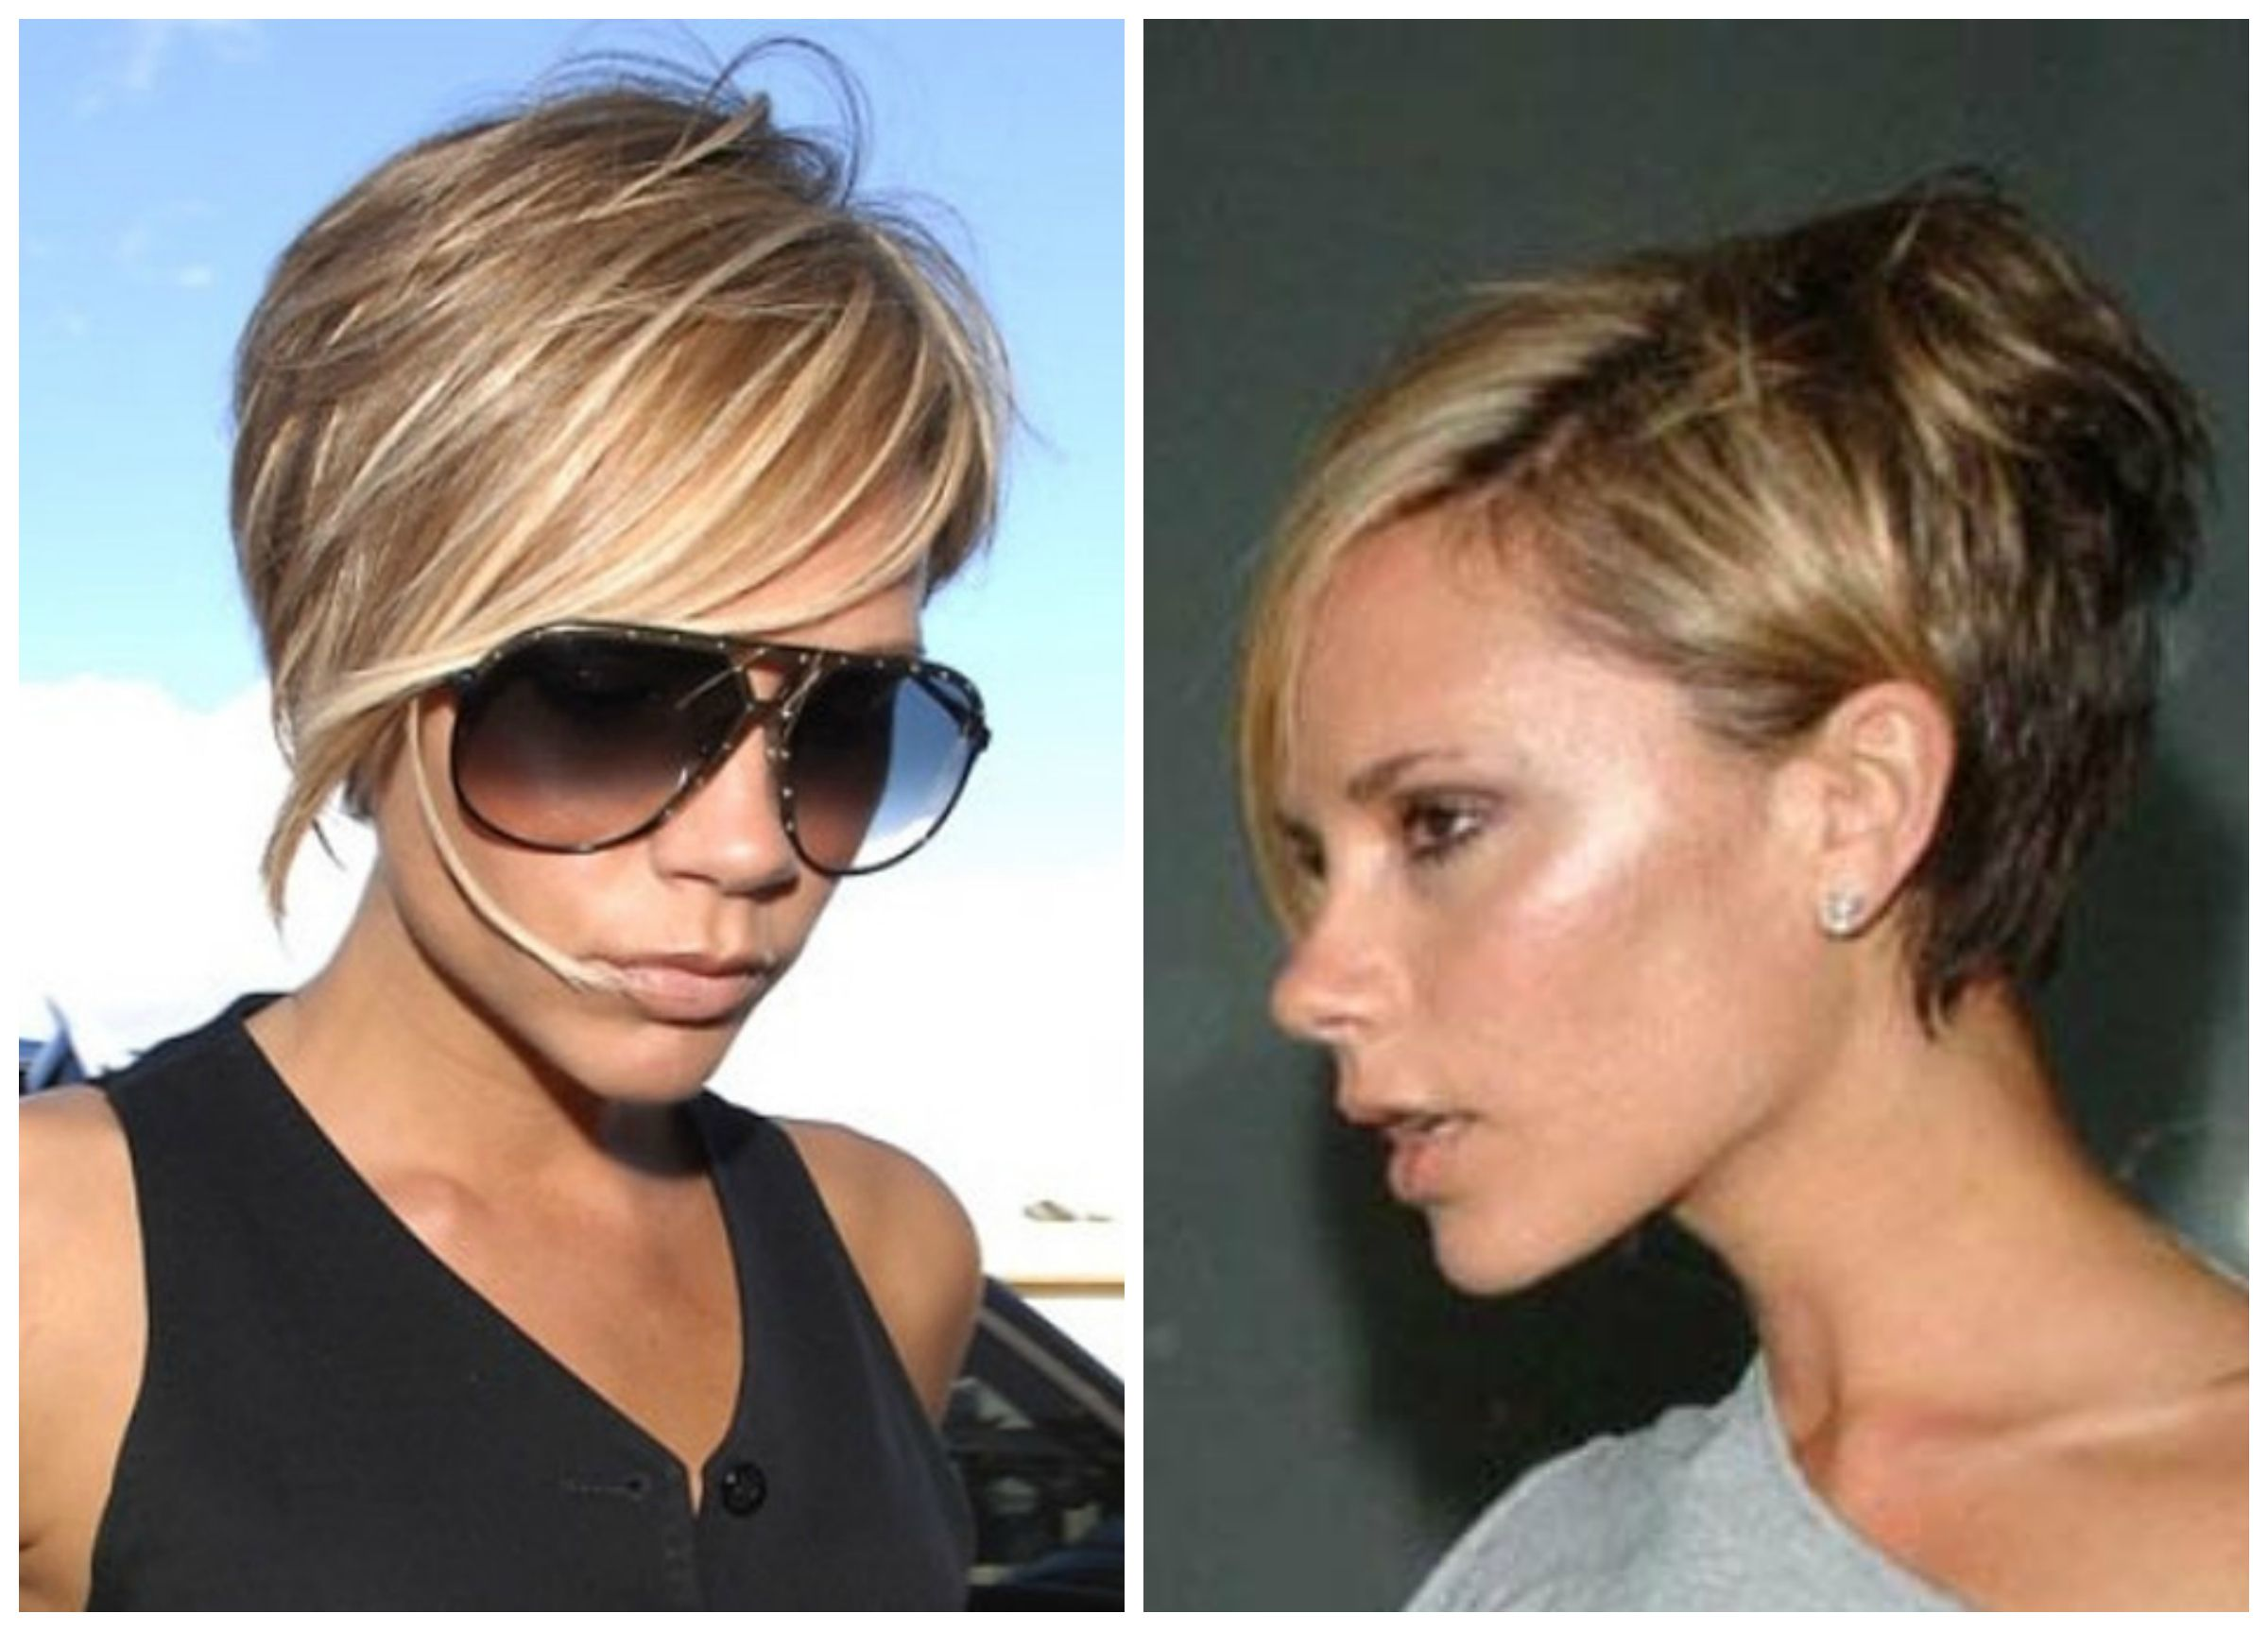 Victoria Beckham Short Hairstyles Front And Back Celebrity Hairstyles Beckham Hair Victoria Beckham Hair Victoria Beckham Short Hair